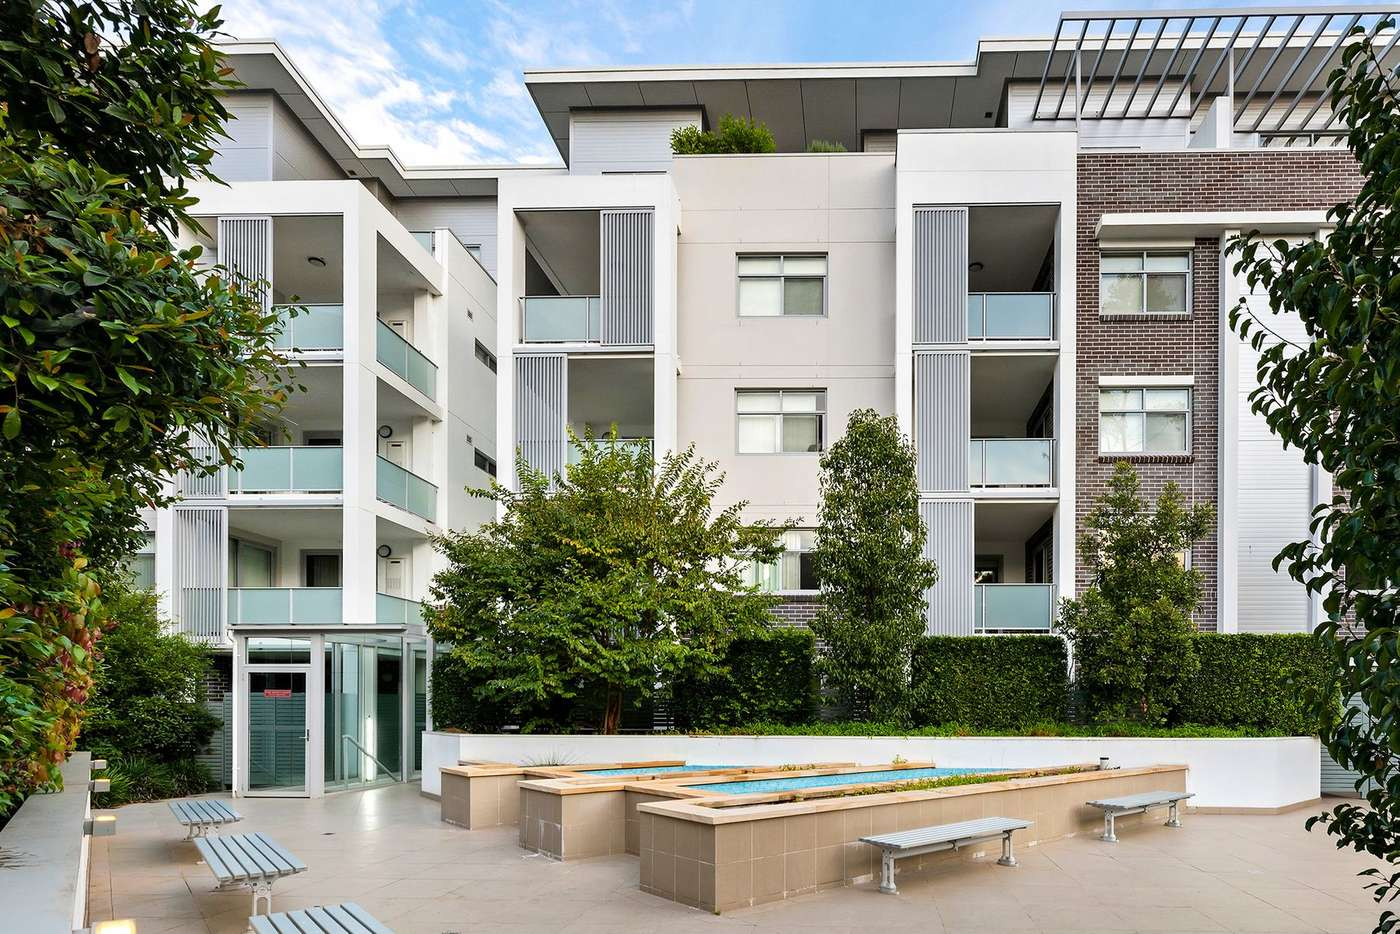 Main view of Homely apartment listing, 72/212-216 Mona Vale Road, St Ives NSW 2075